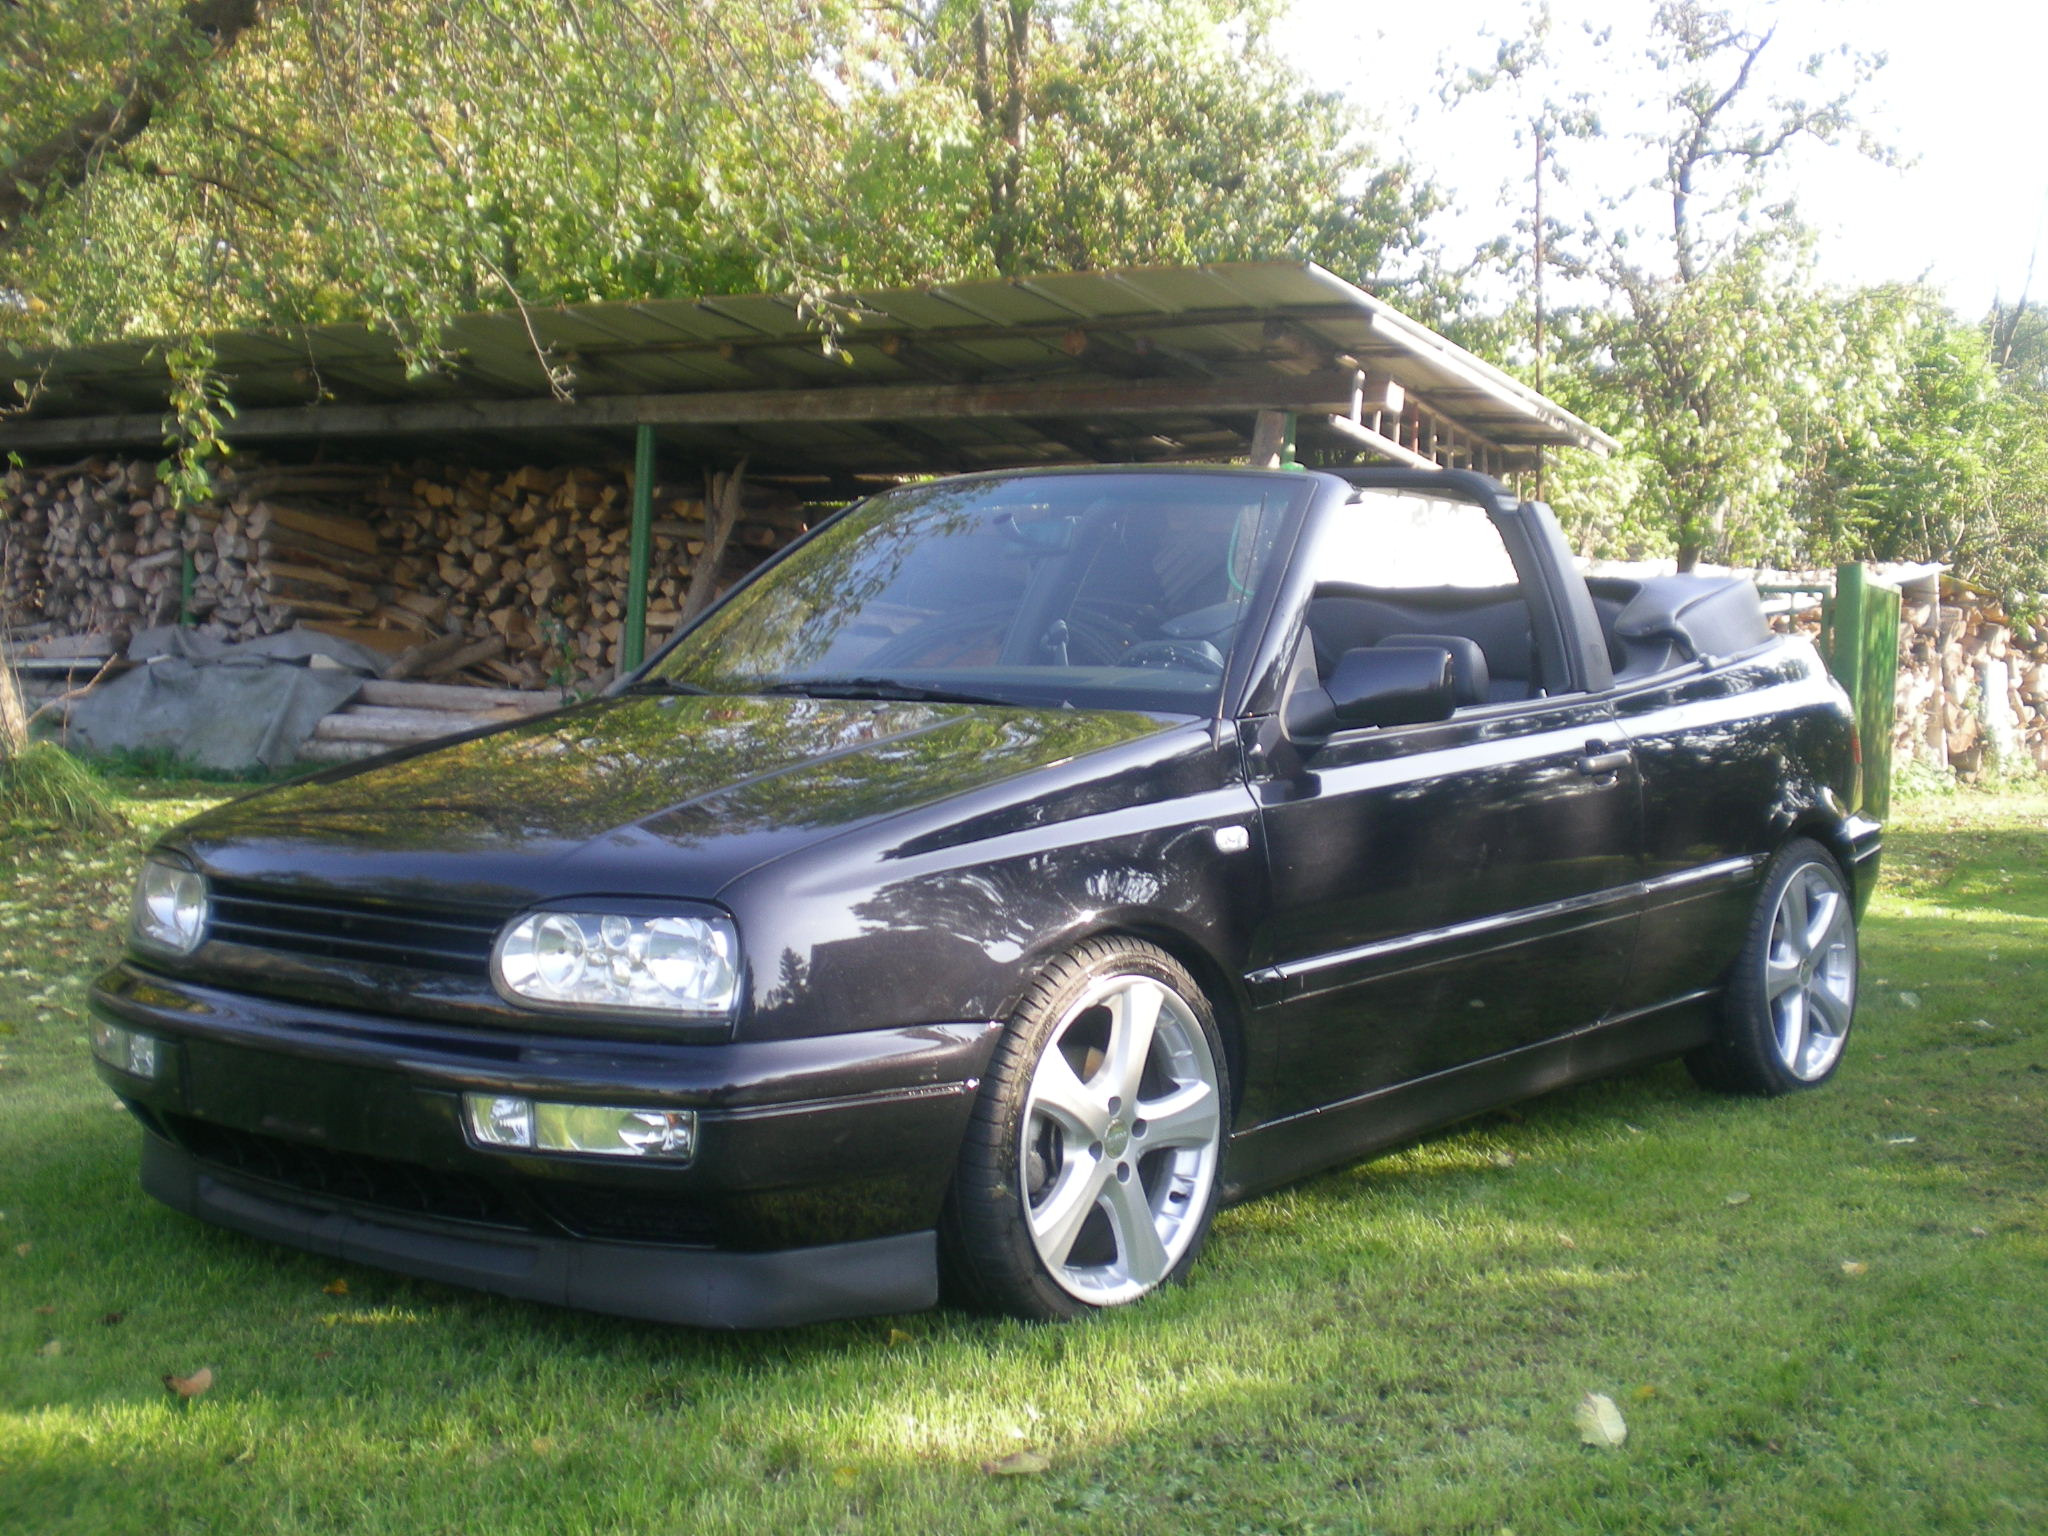 vw golf 3 2 0 cabrio mit vollausstattung. Black Bedroom Furniture Sets. Home Design Ideas